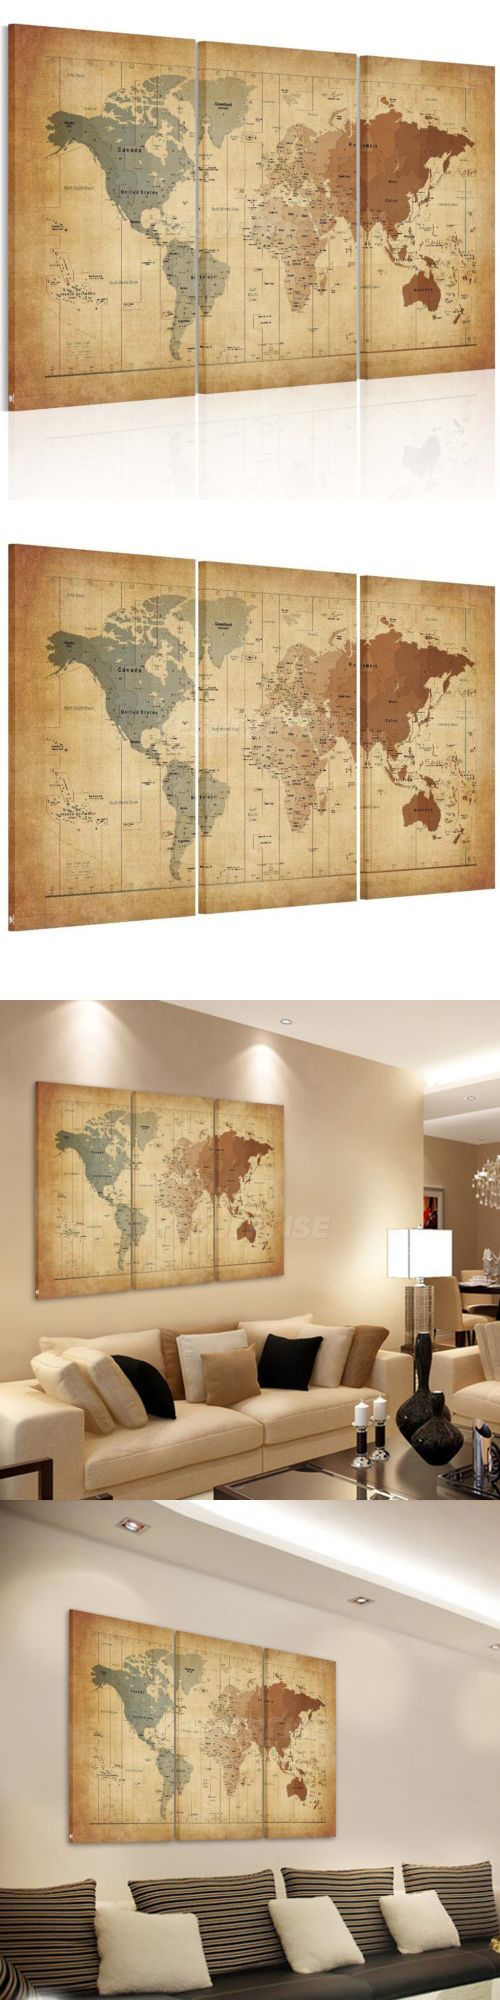 art paintings mixed media collage vintage framed world map canvas prints wall art paintings ready